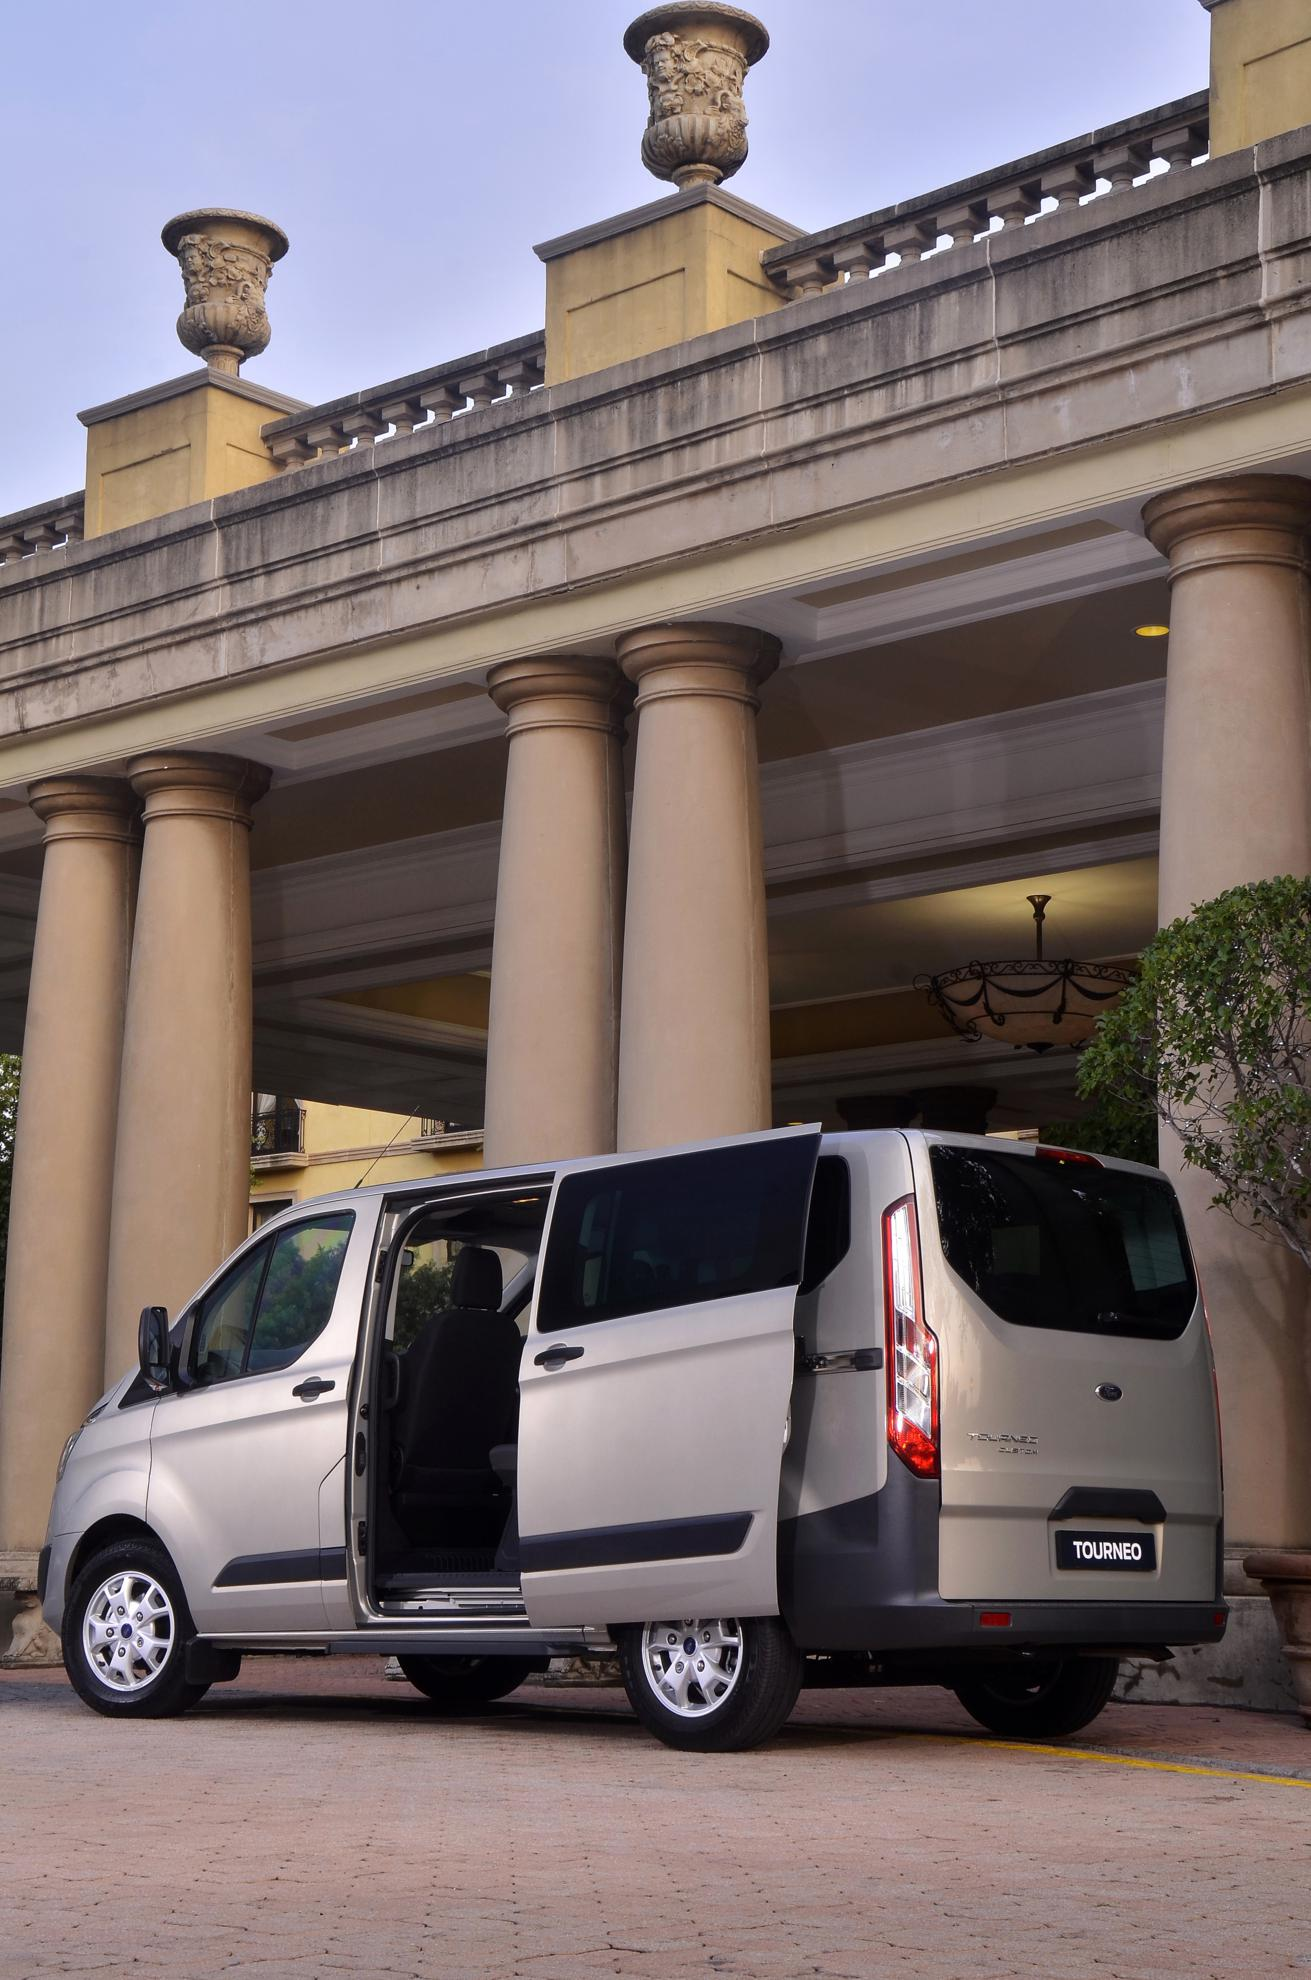 Ford Tourneo Hotel Transport